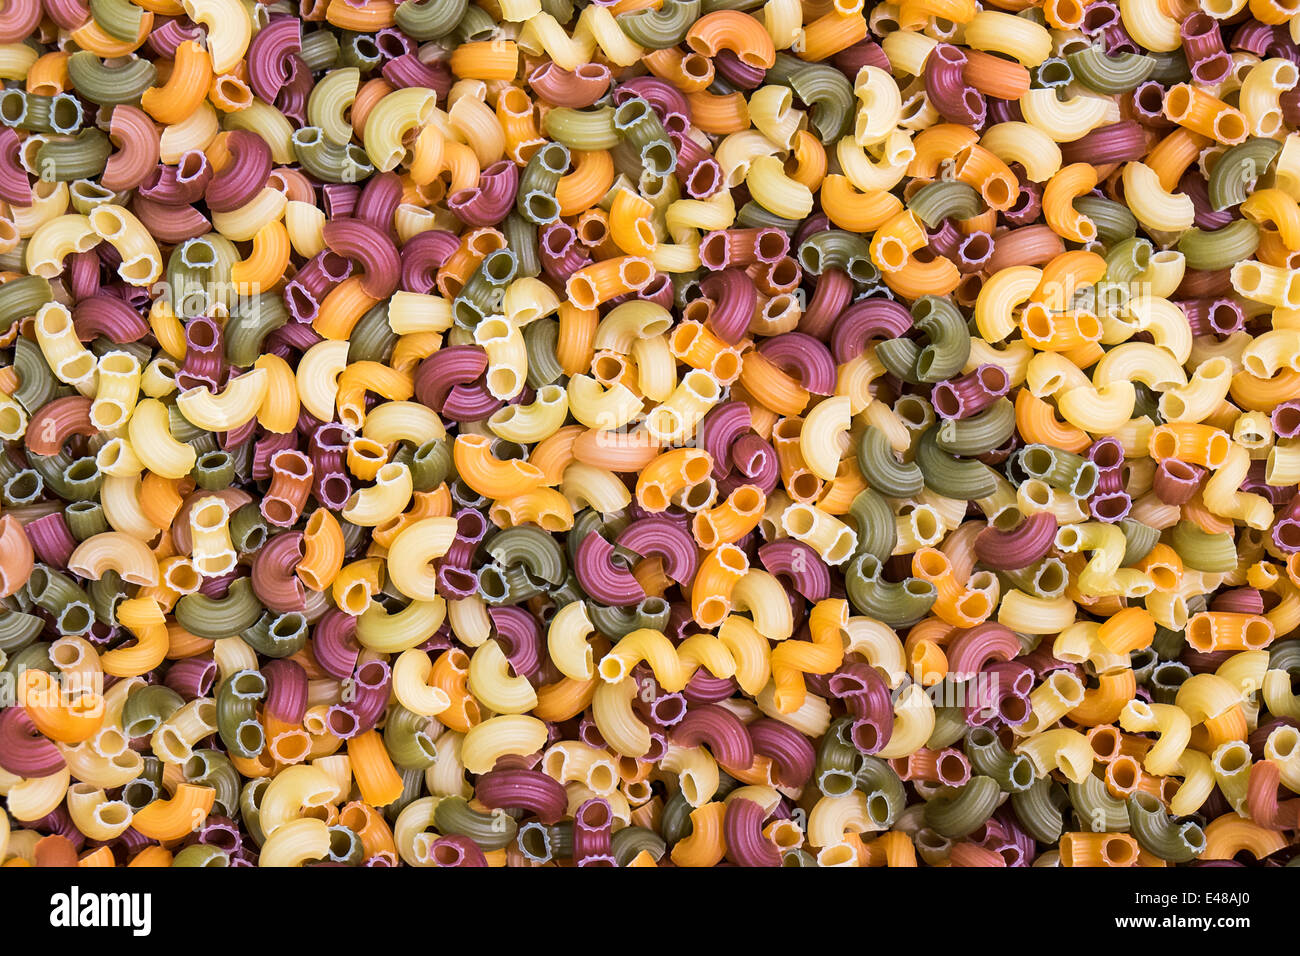 Background from multi-colored pasta, closeup filling the frame. - Stock Image